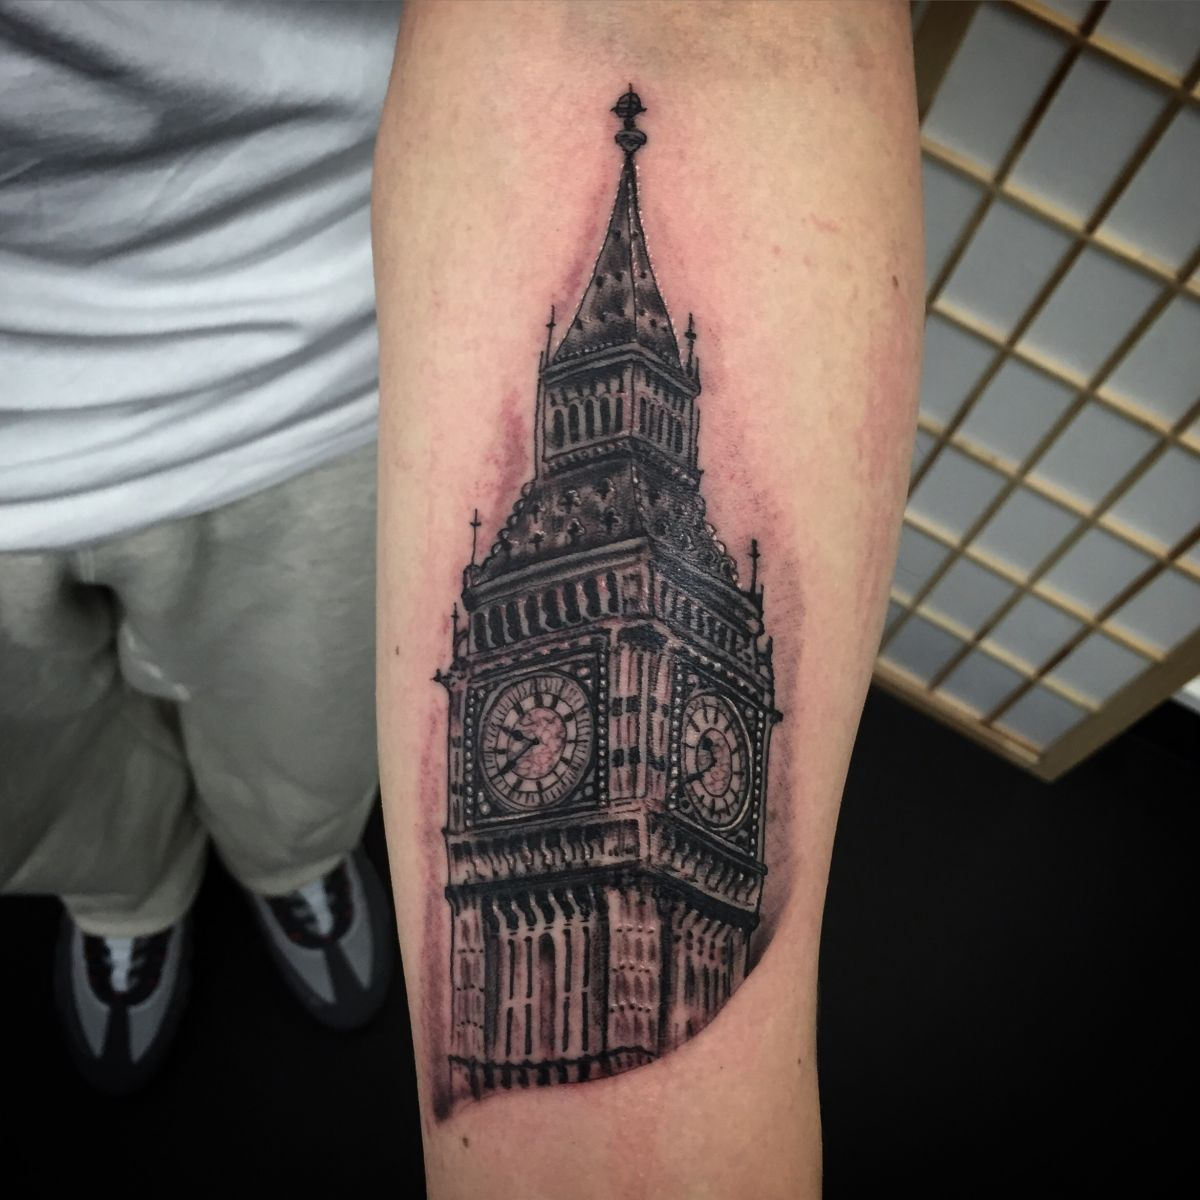 Big Ben tattoo